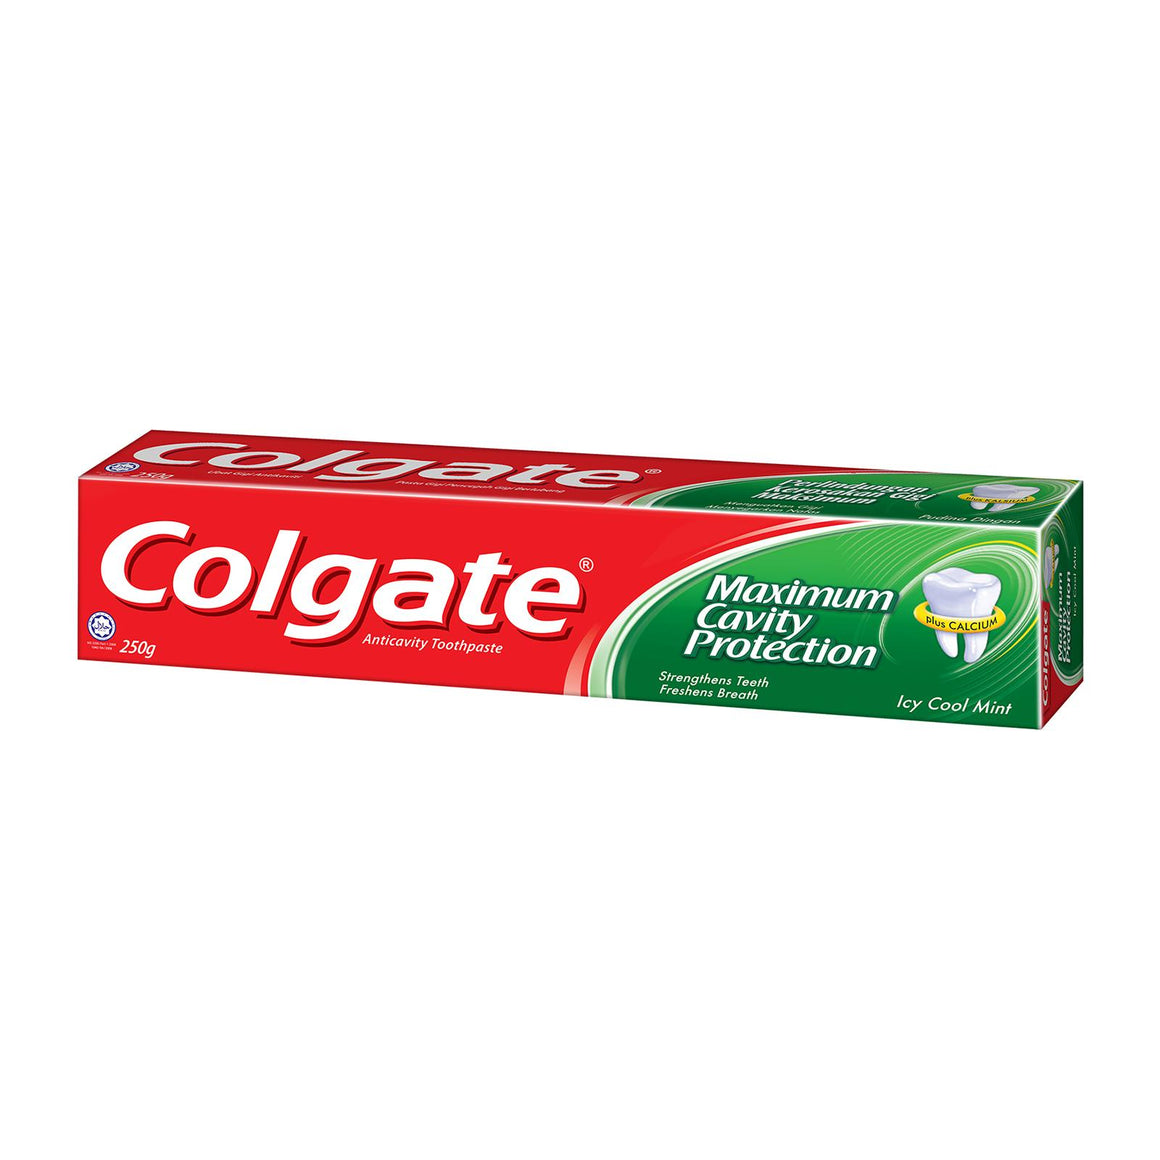 Colgate Toothpaste Max Cavity Protection 175g